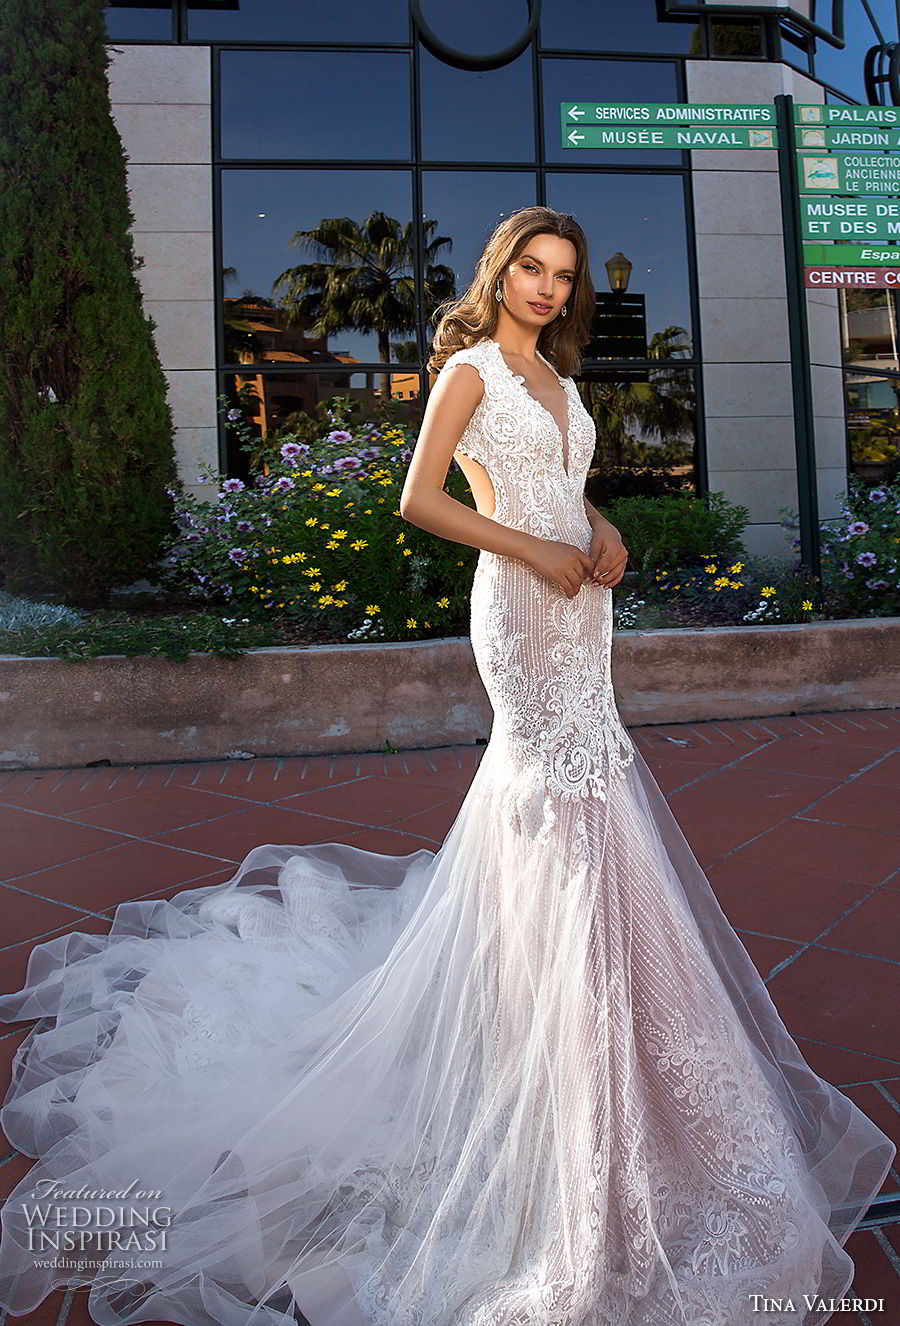 tina valerdi 2019 bridal cap sleeves deep plunging v neckline heavily embellished bodice elegant fit and flare wedding dress keyhole back royal train (11) mv